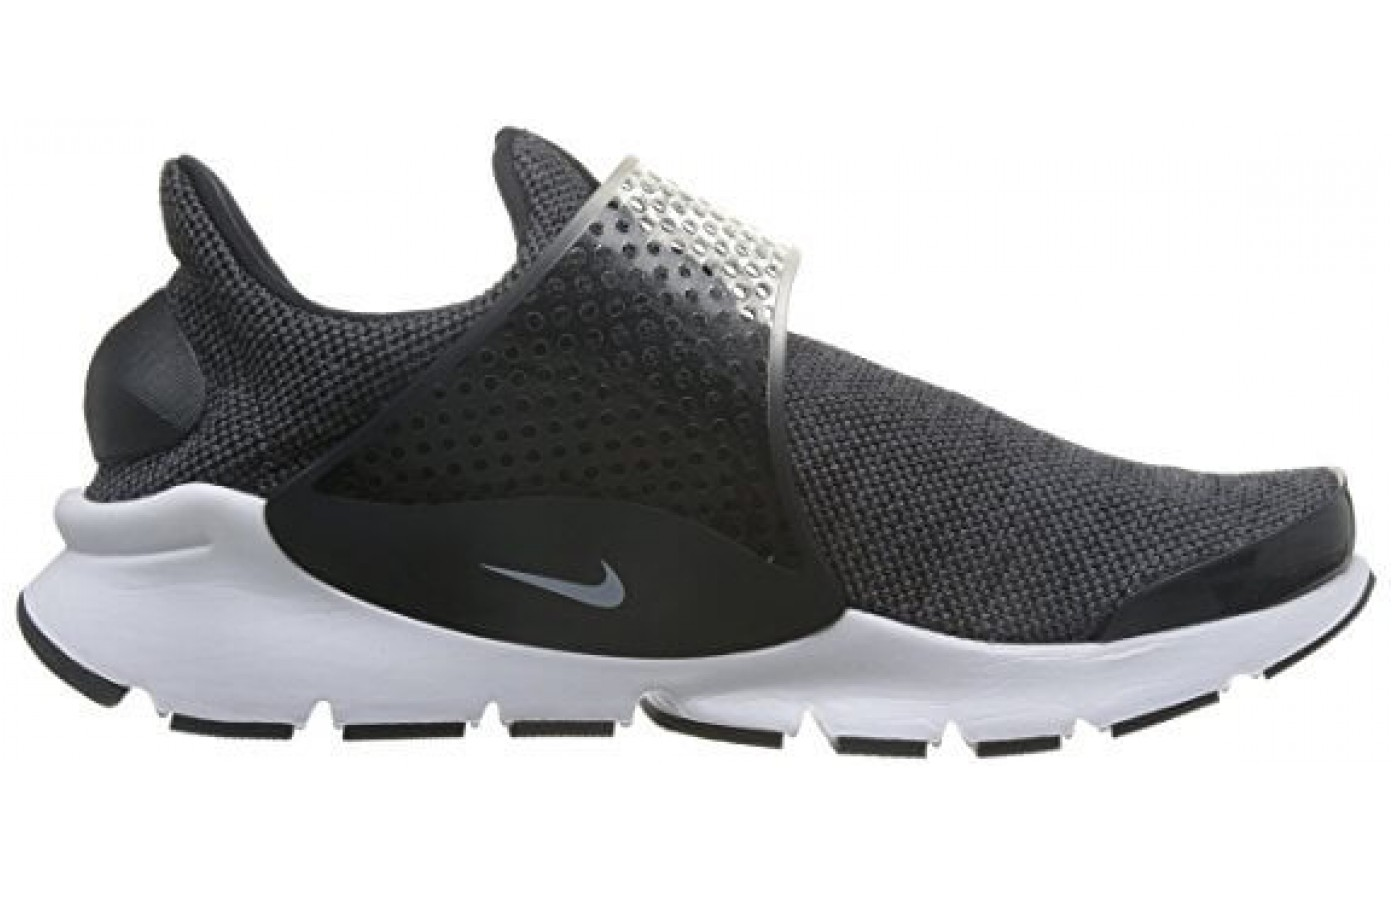 aa5511dda896 Nike Sock Dart SE Premium - To Buy or Not in Apr 2019